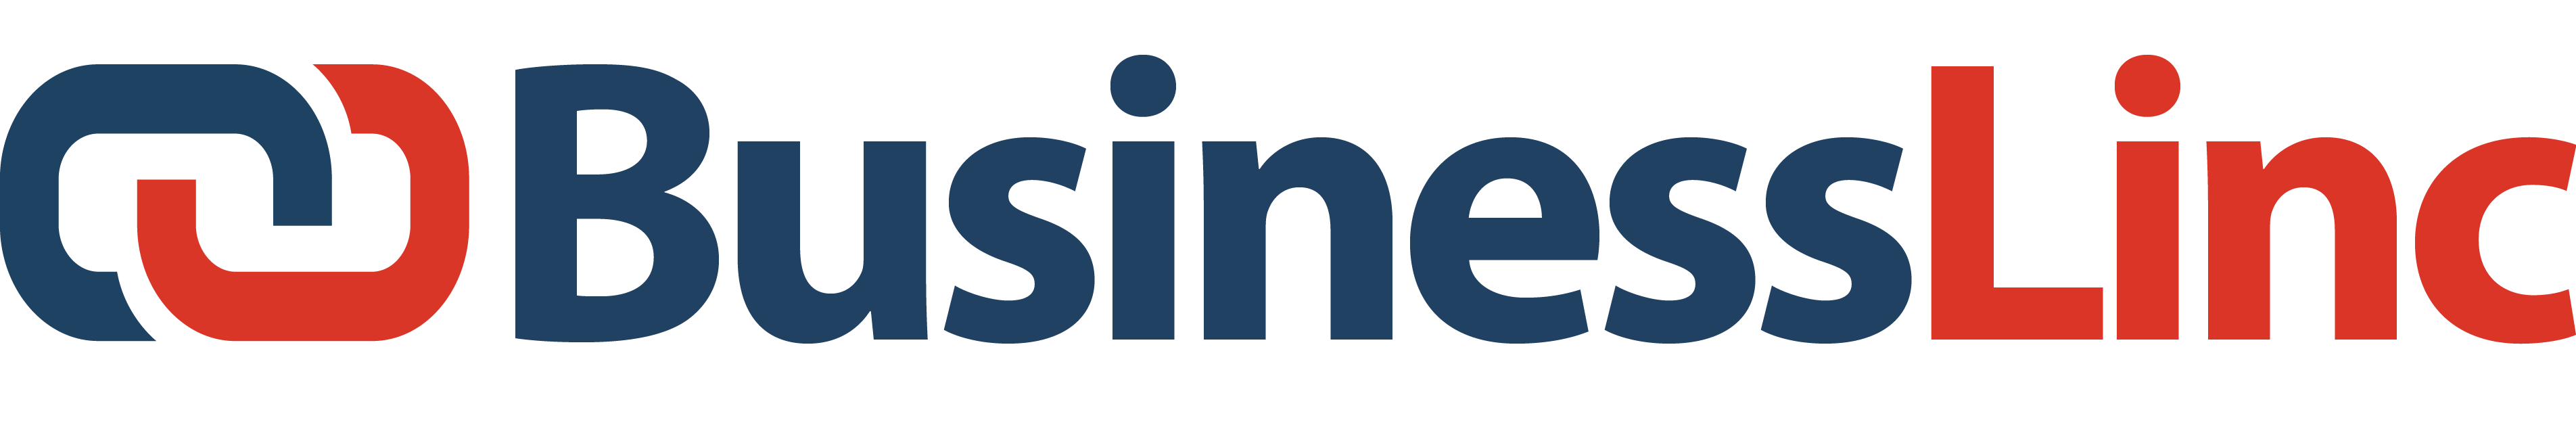 BusinessLinc | Business Support Services